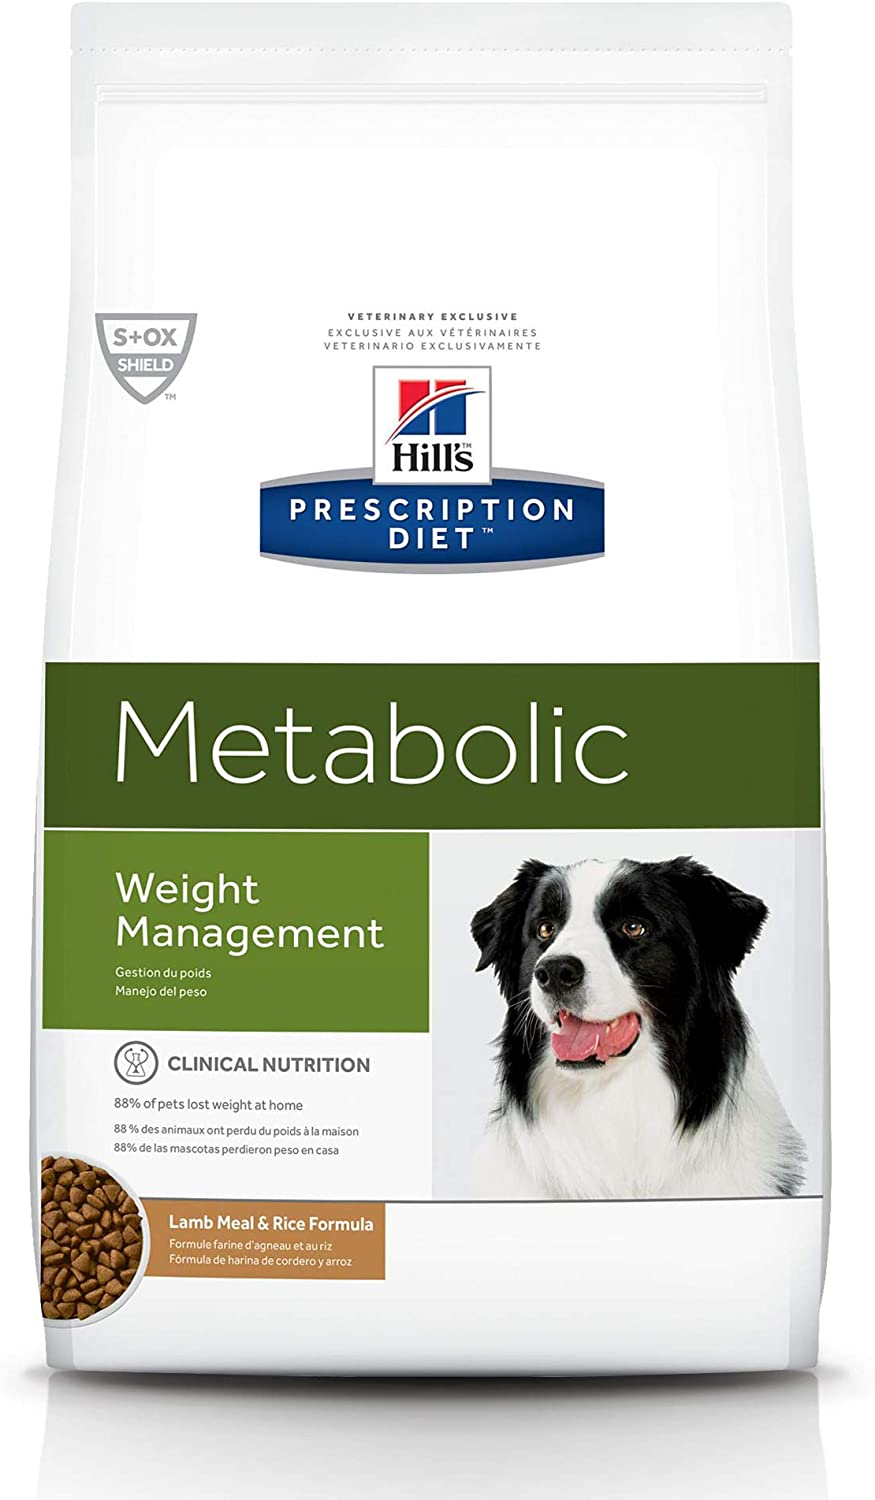 Hill's Prescription Diet Dry Dog Food, Veterinary Diet, Metabolic Weight Management